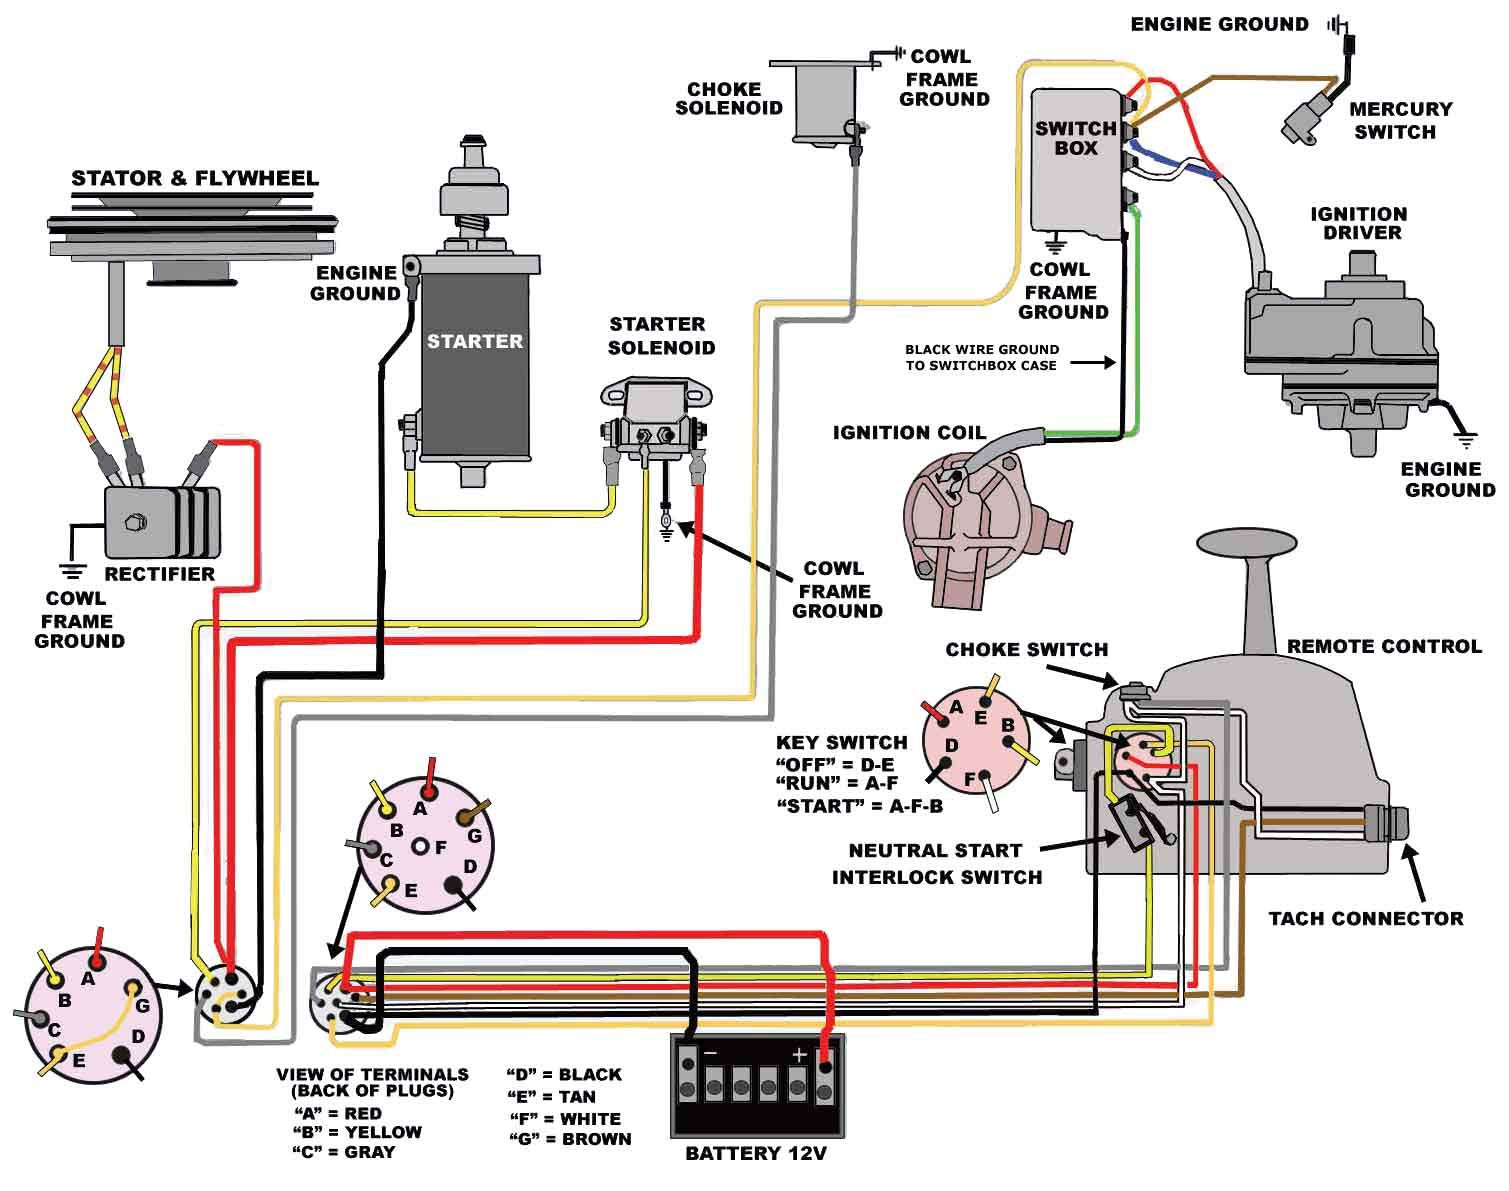 Mercury Outboard Wiring Diagram | Diagram | Pinterest | Mercury ...